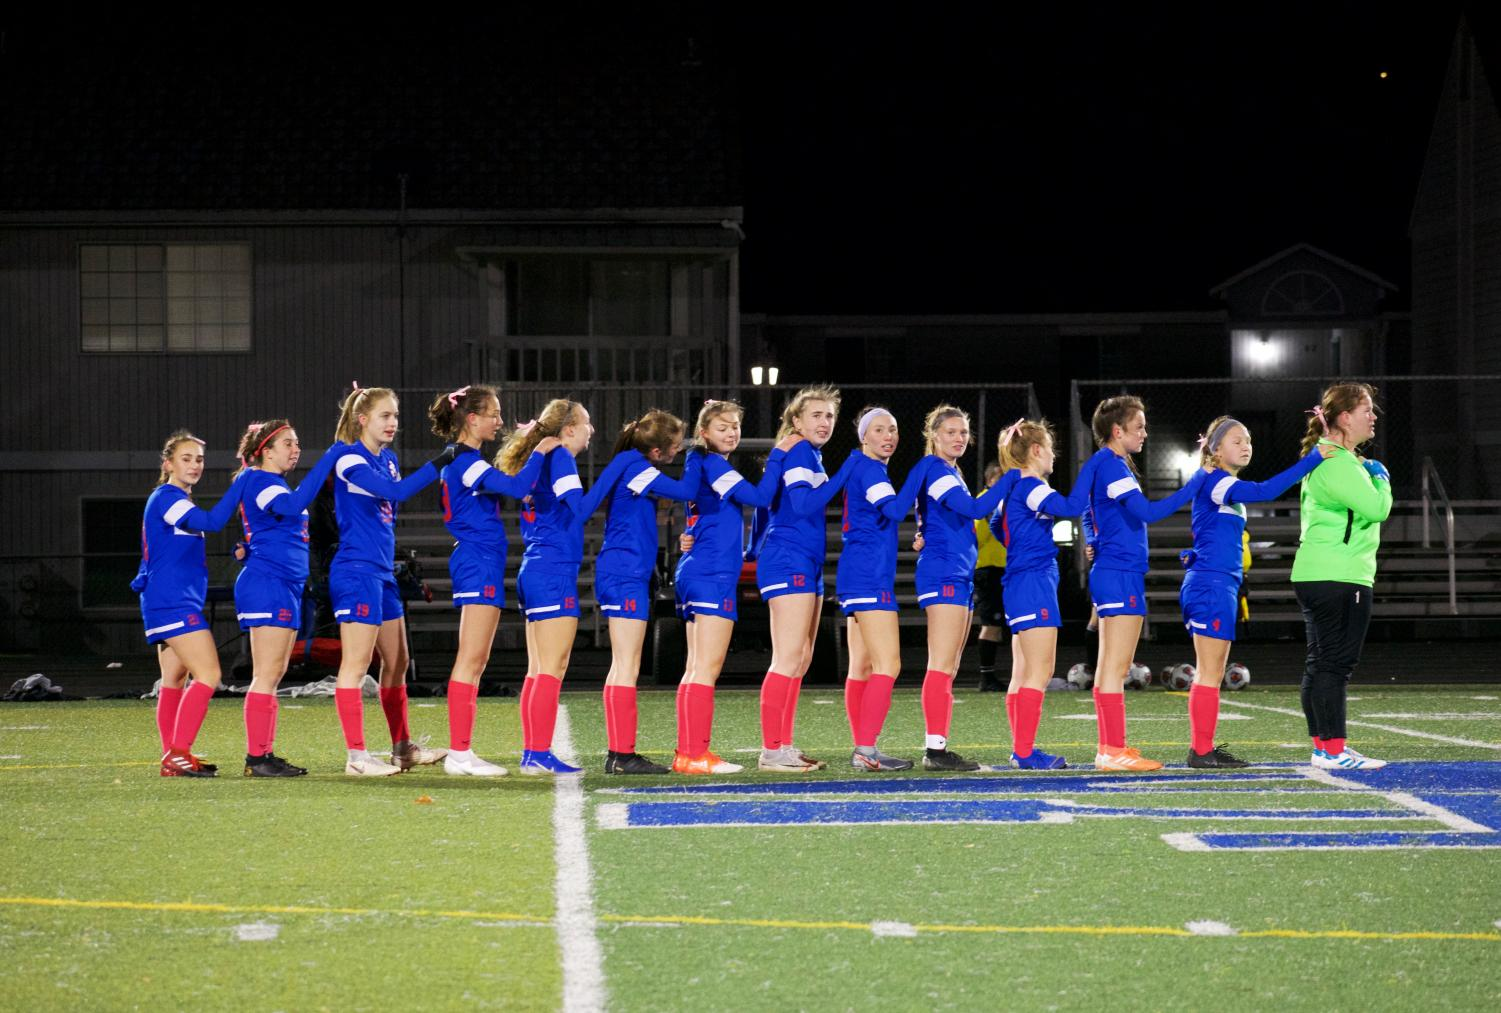 The+girls+soccer+team+stands+linked+together+during+the+national+anthem.